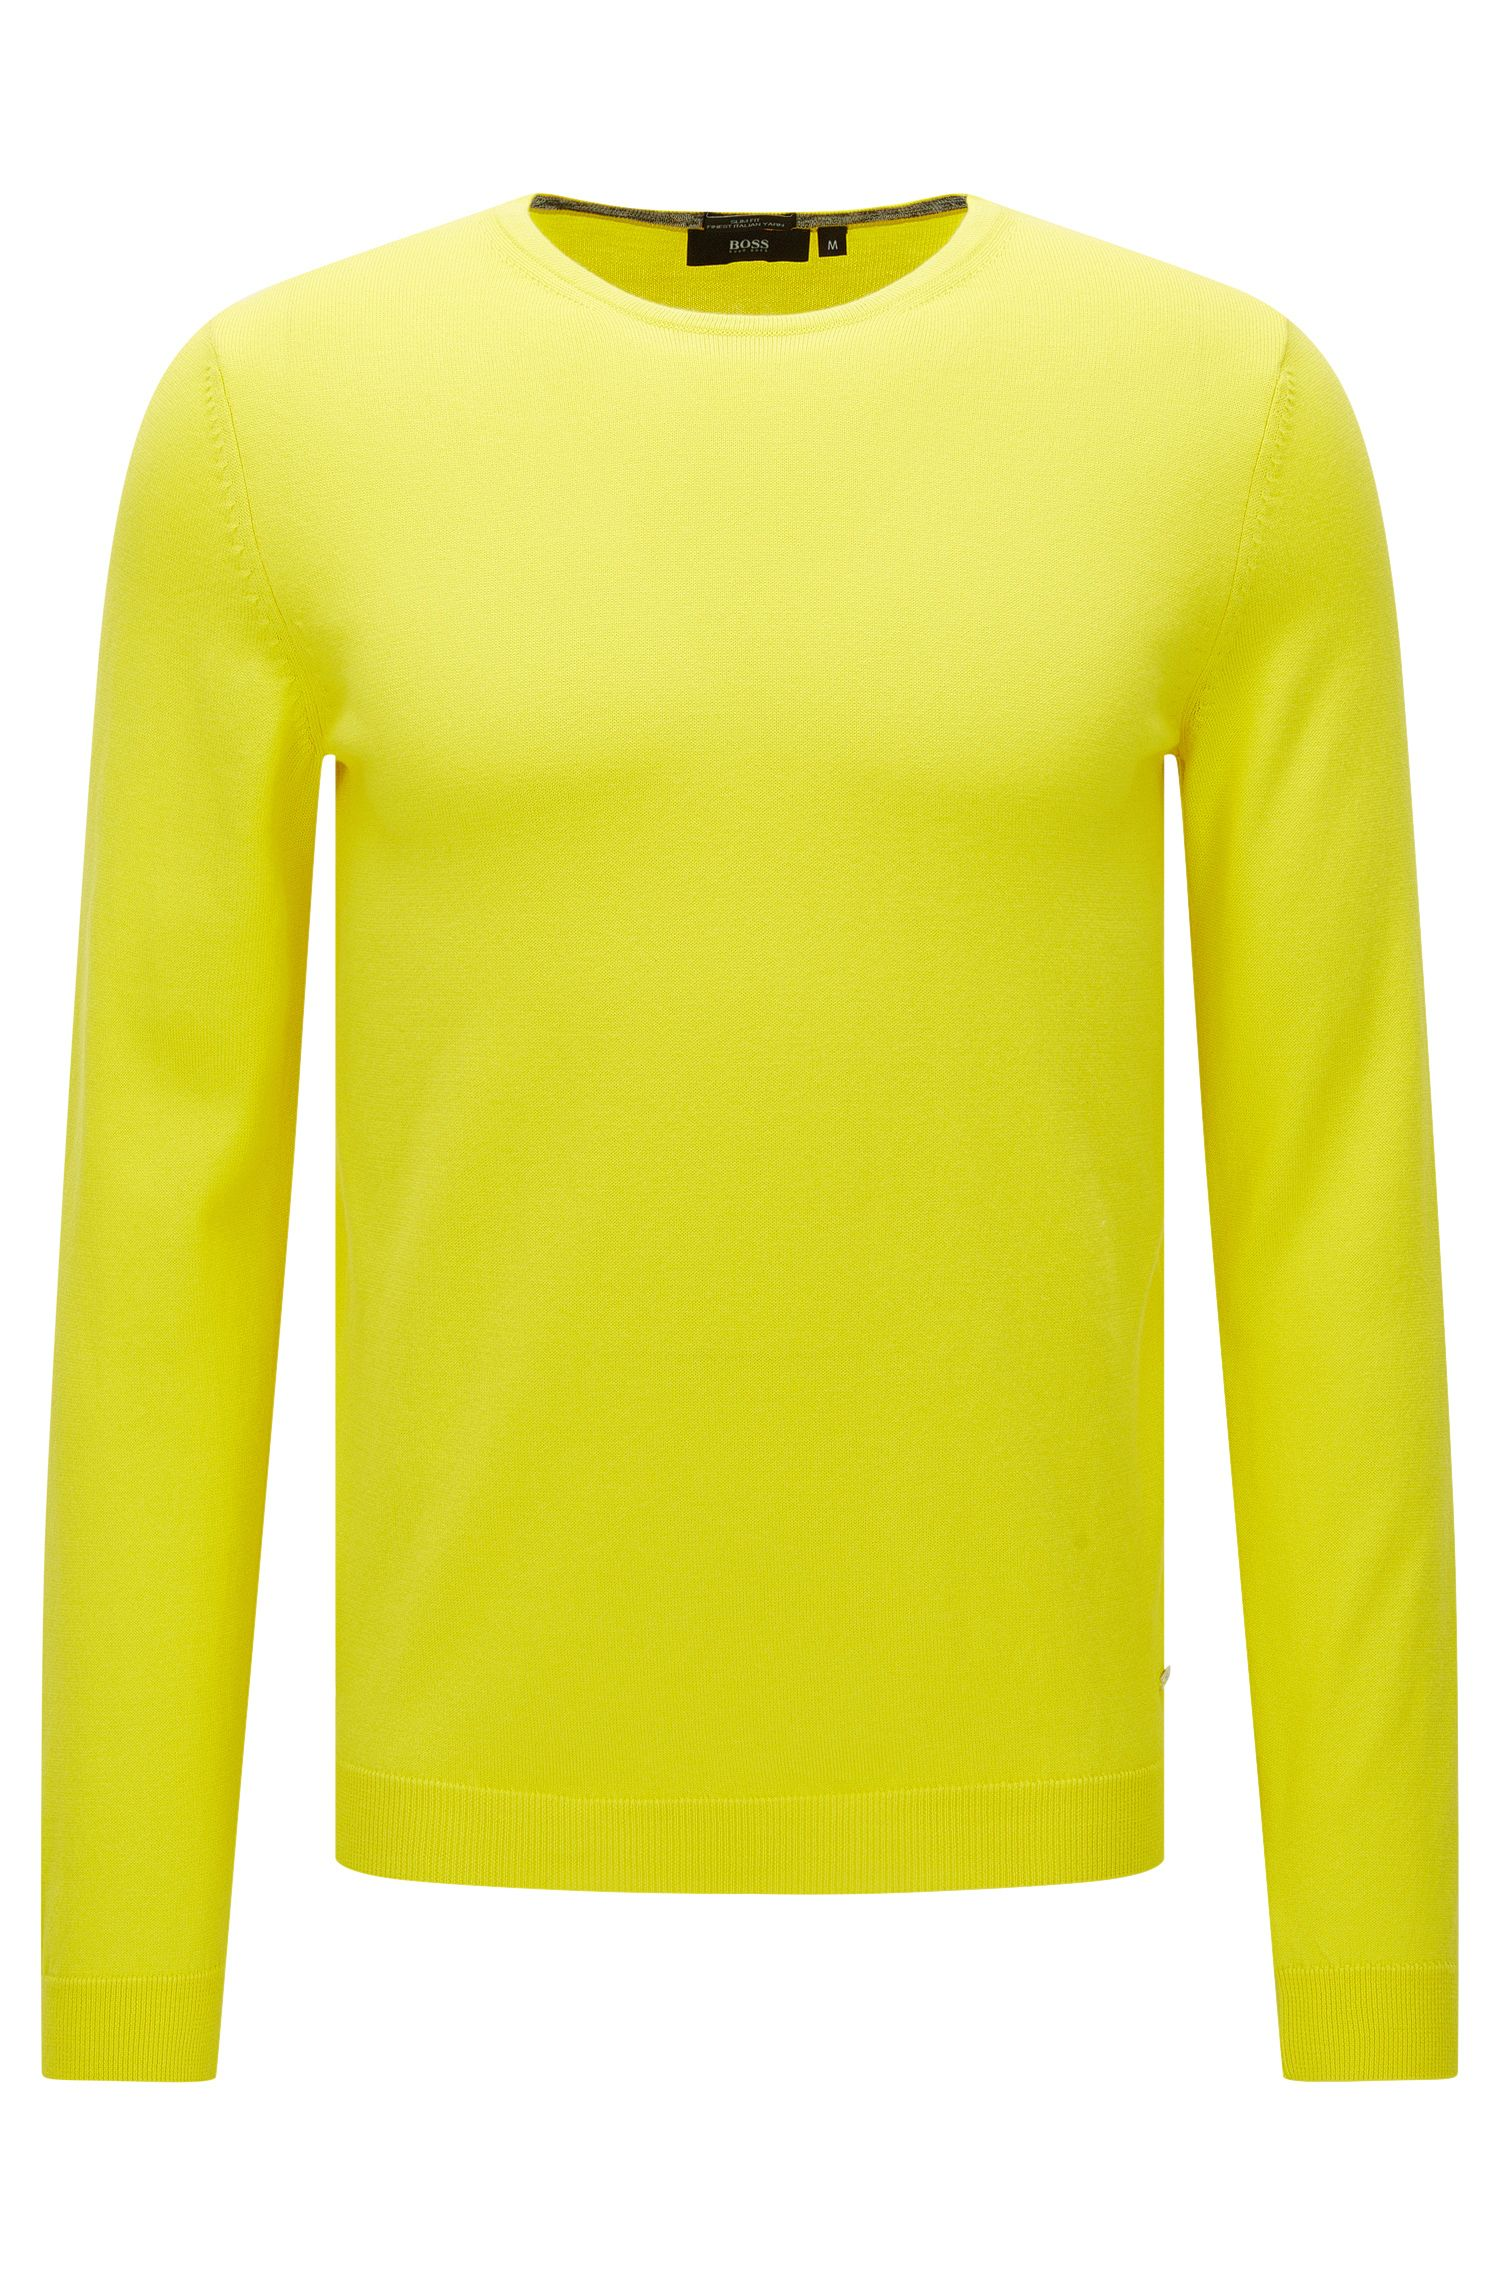 Plain-coloured slim-fit sweater in cotton: 'Fines-O'